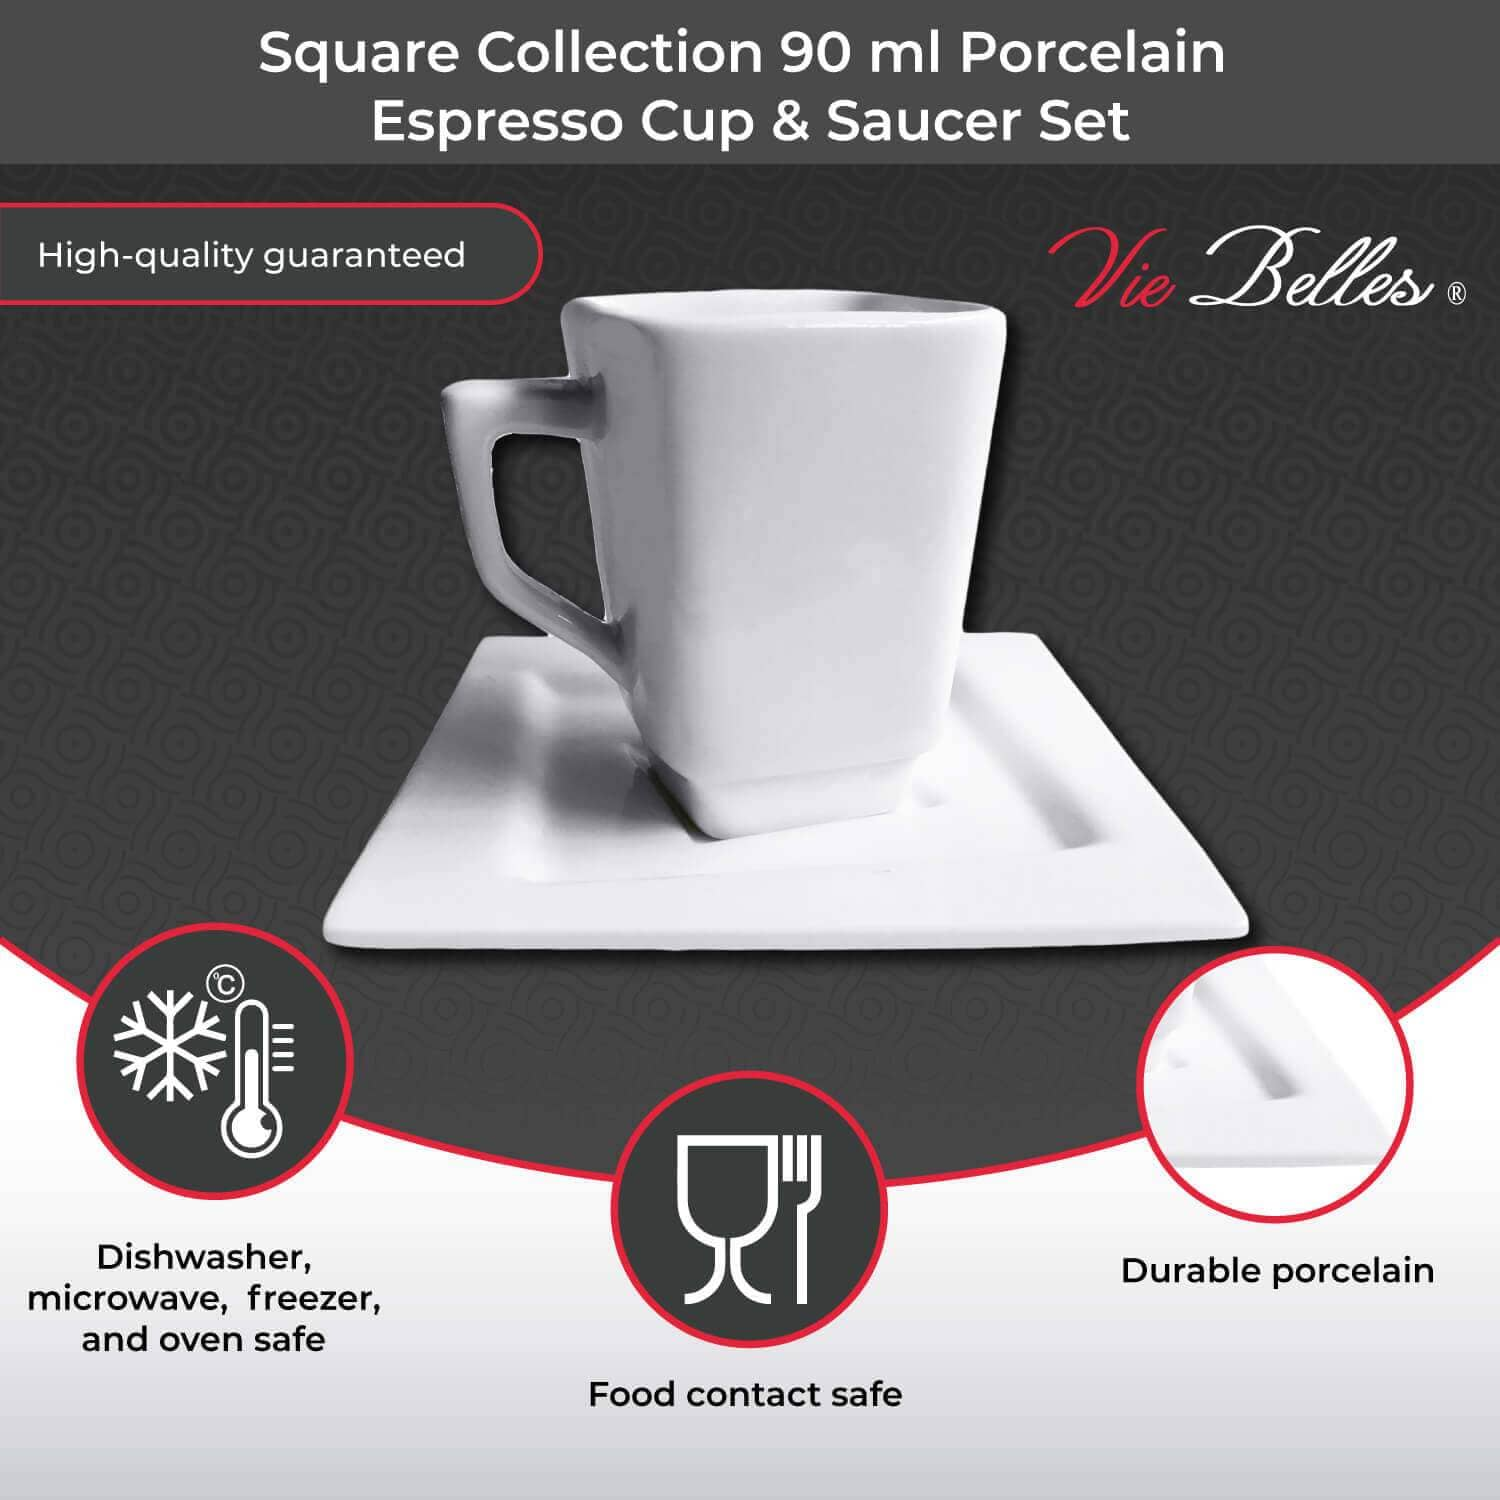 Vie Belles Coffee Mugs Square Collection 90 ml Porcelain Espresso Cup & Saucer Set